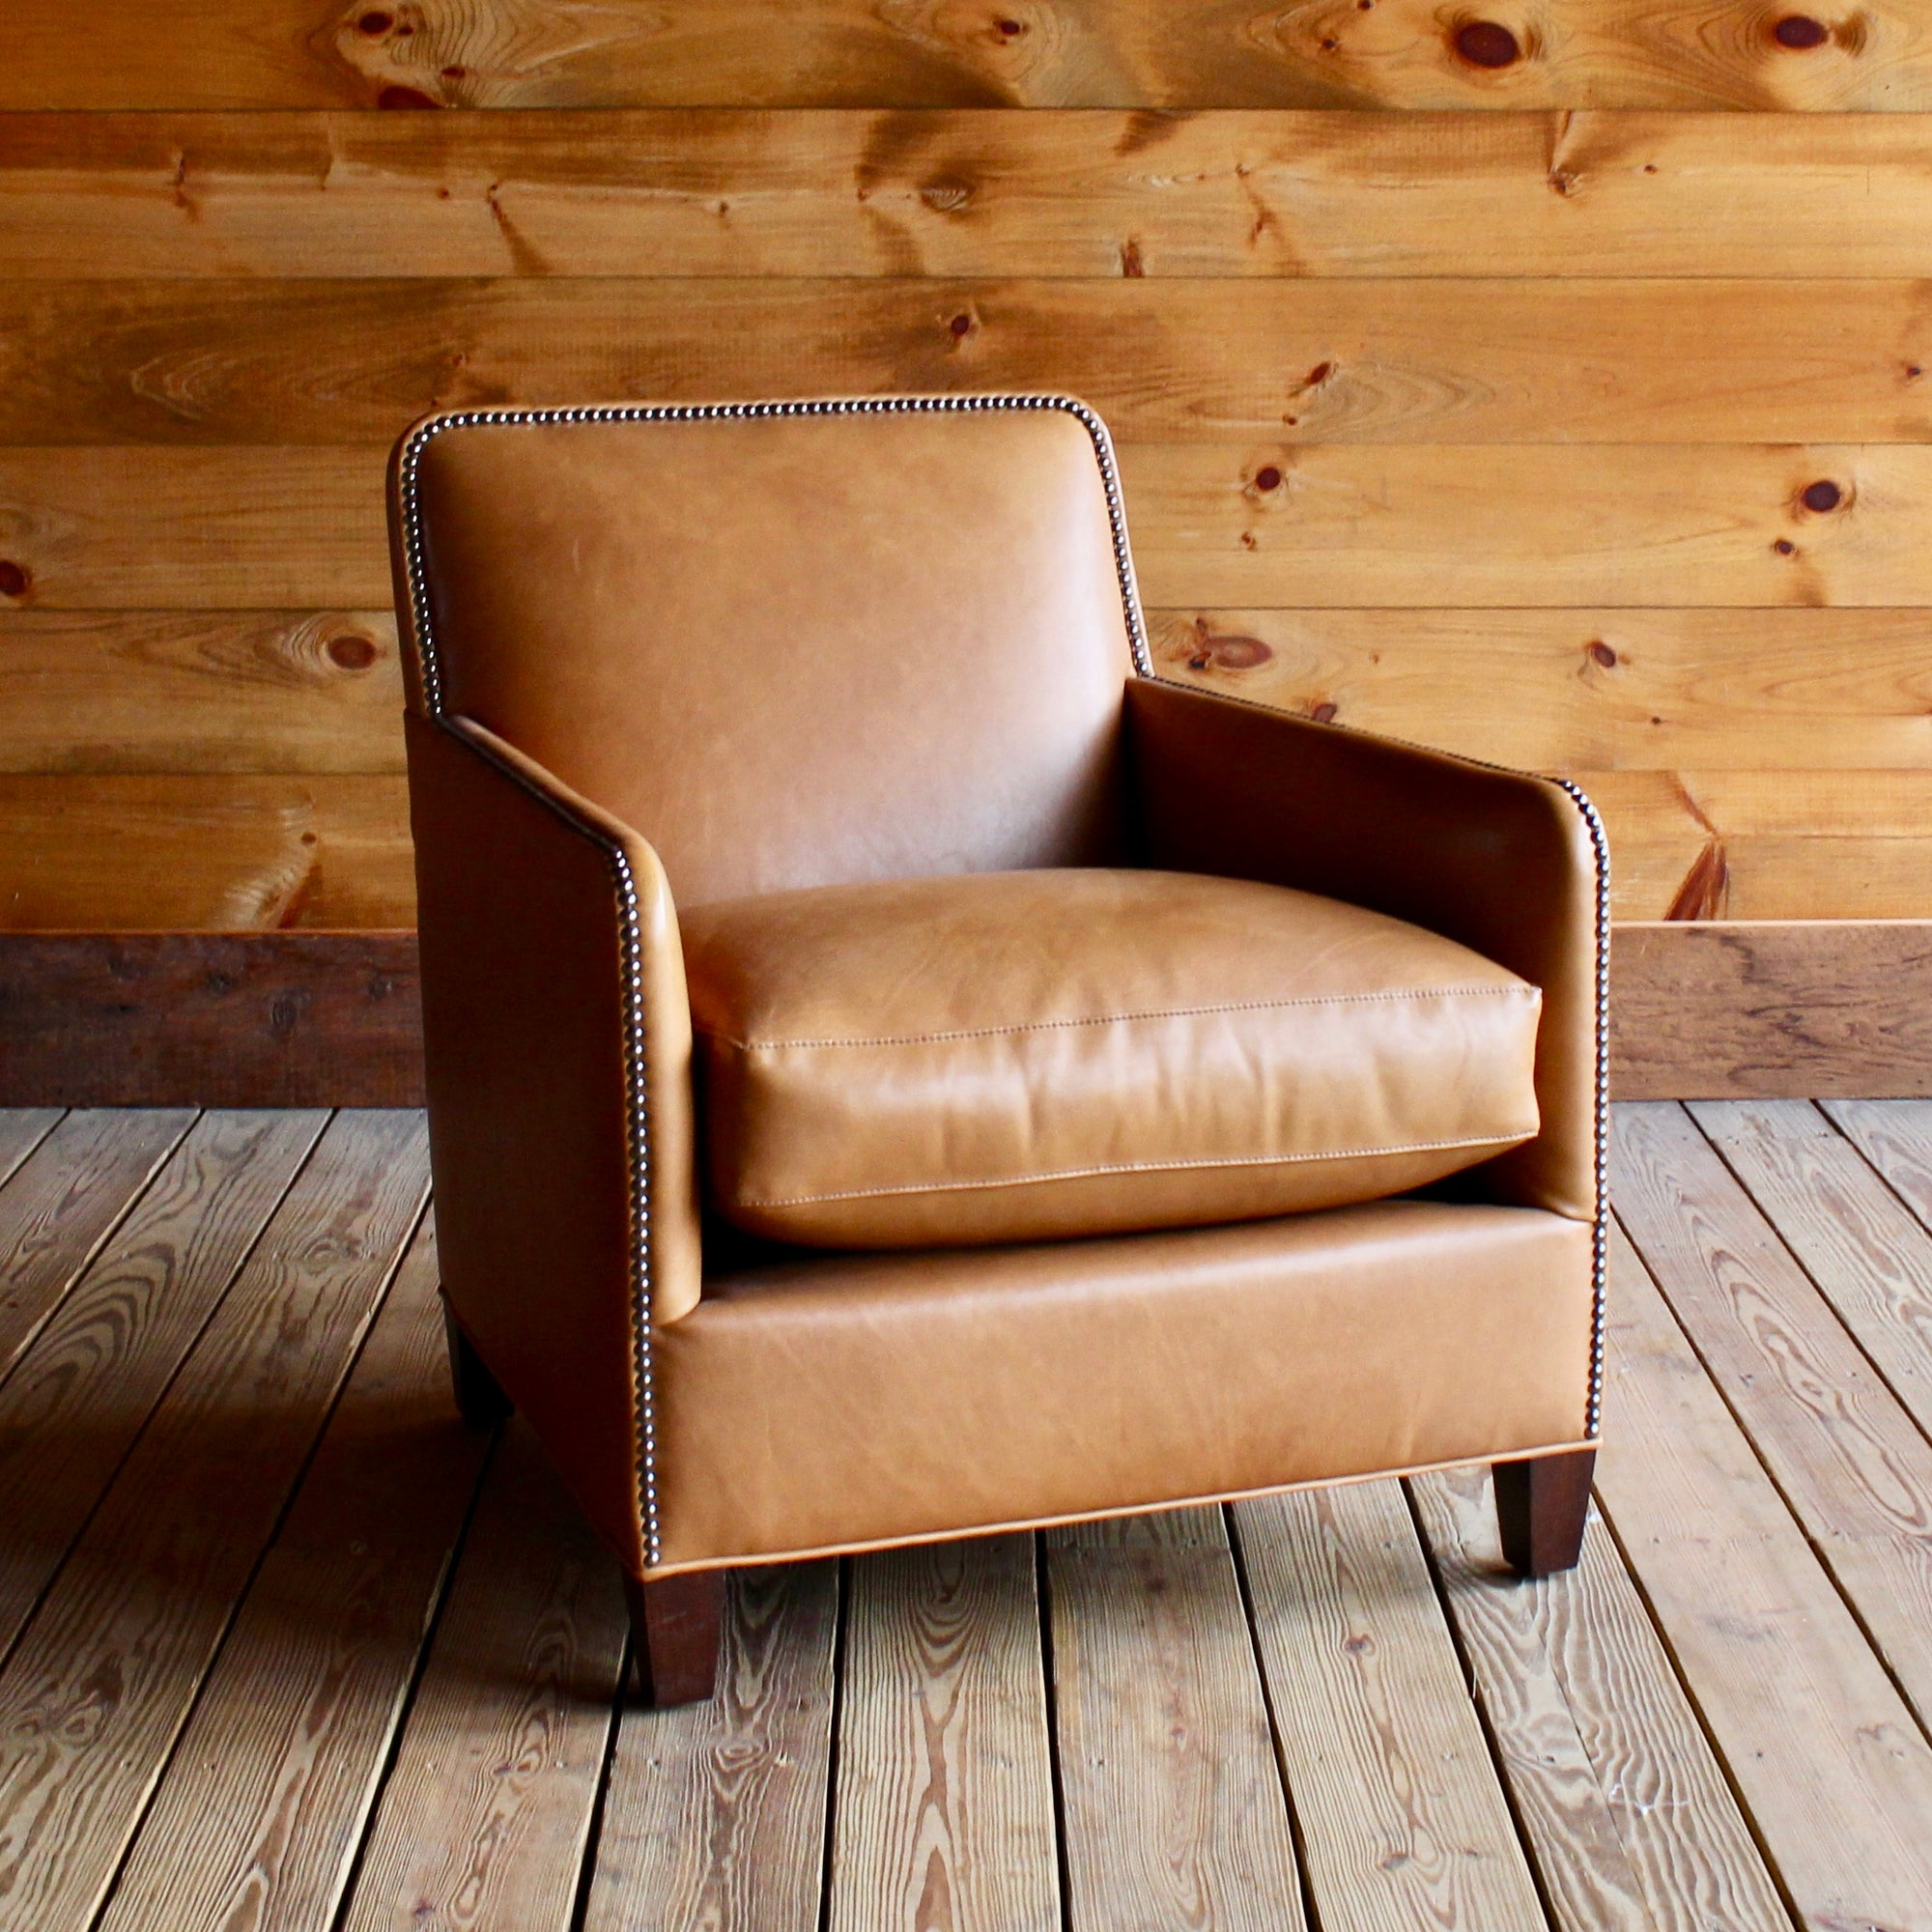 Merveilleux Camel Leather Chair With Sustainably Sourced Wood Frame And Nailhead Trim  ...